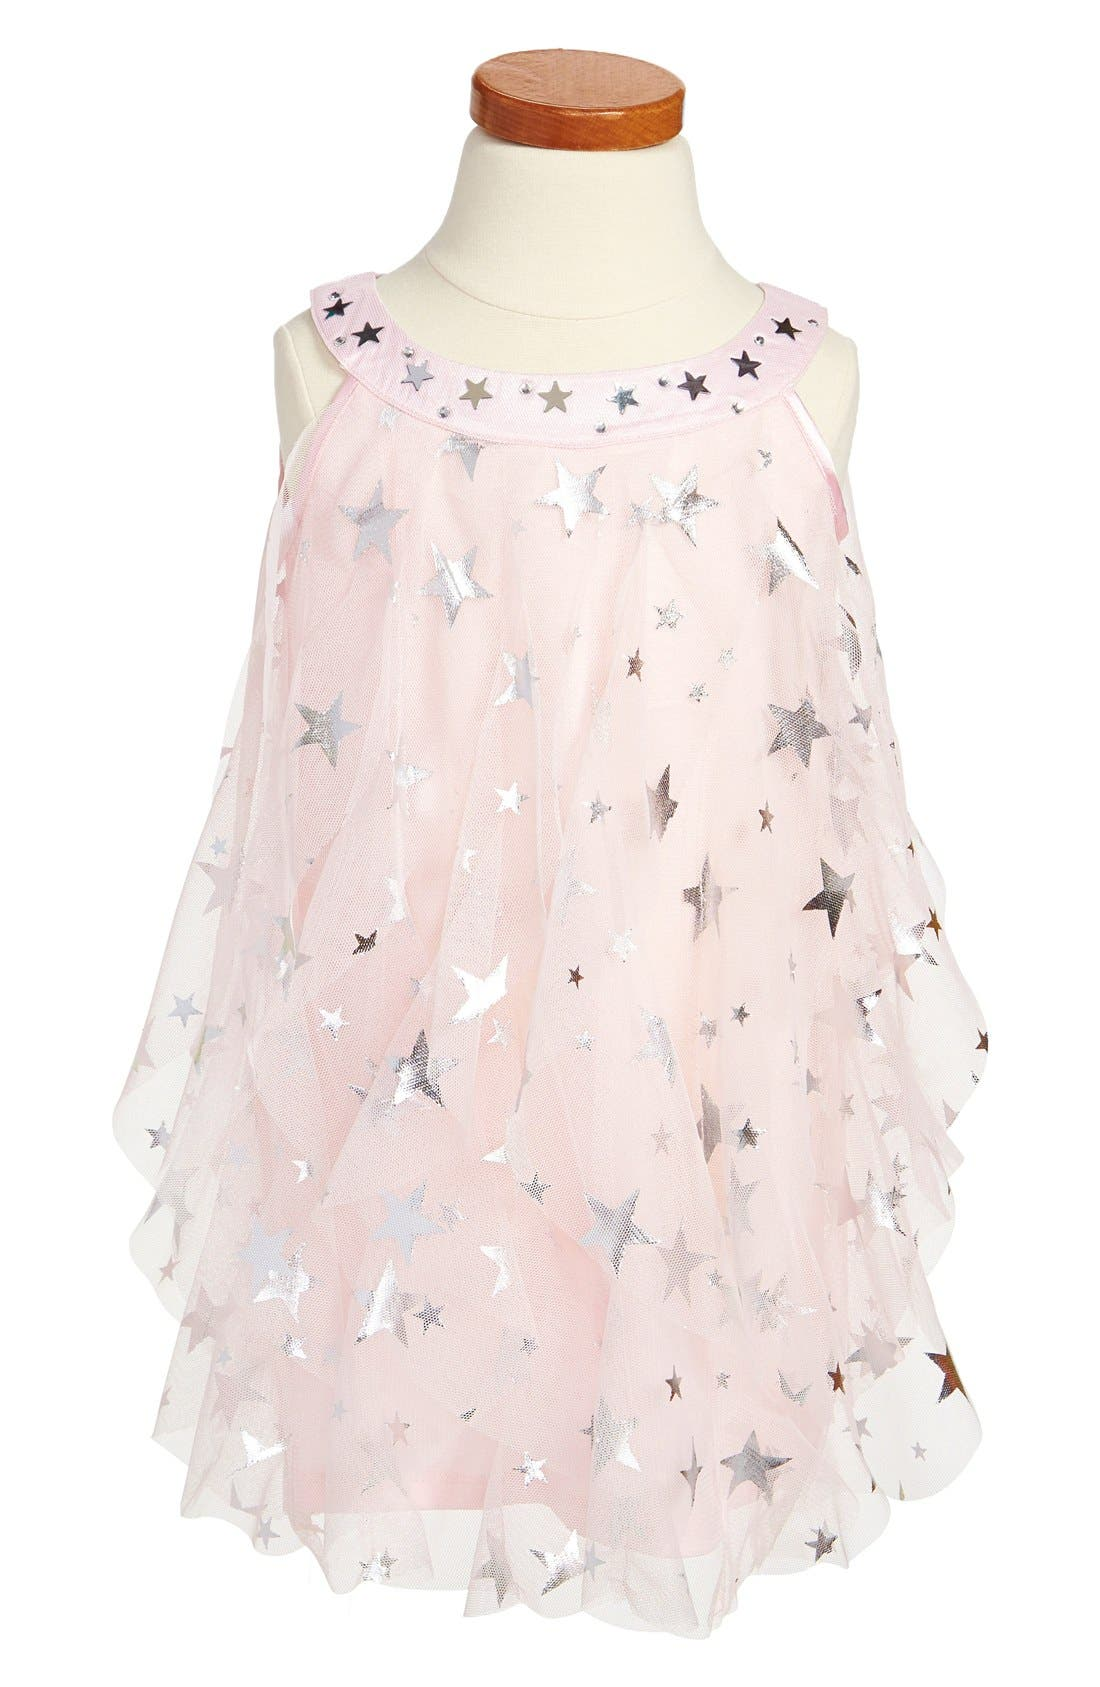 Alternate Image 1 Selected - Biscotti 'Starry Eyed' Ruffle Trapeze Dress (Toddler Girls)